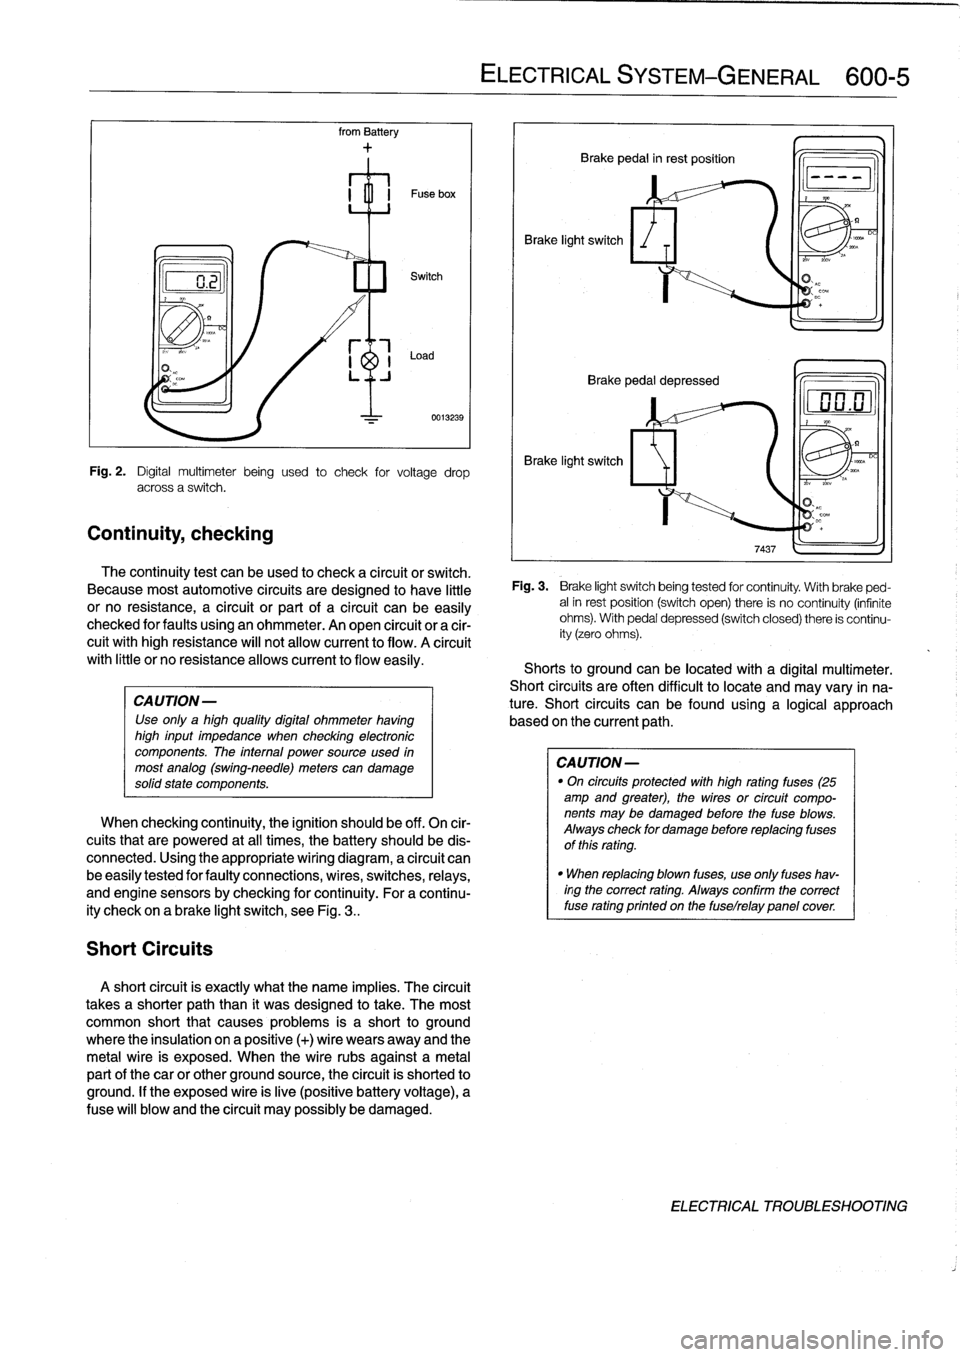 fuses bmw 318i 1998 e36 workshop manual